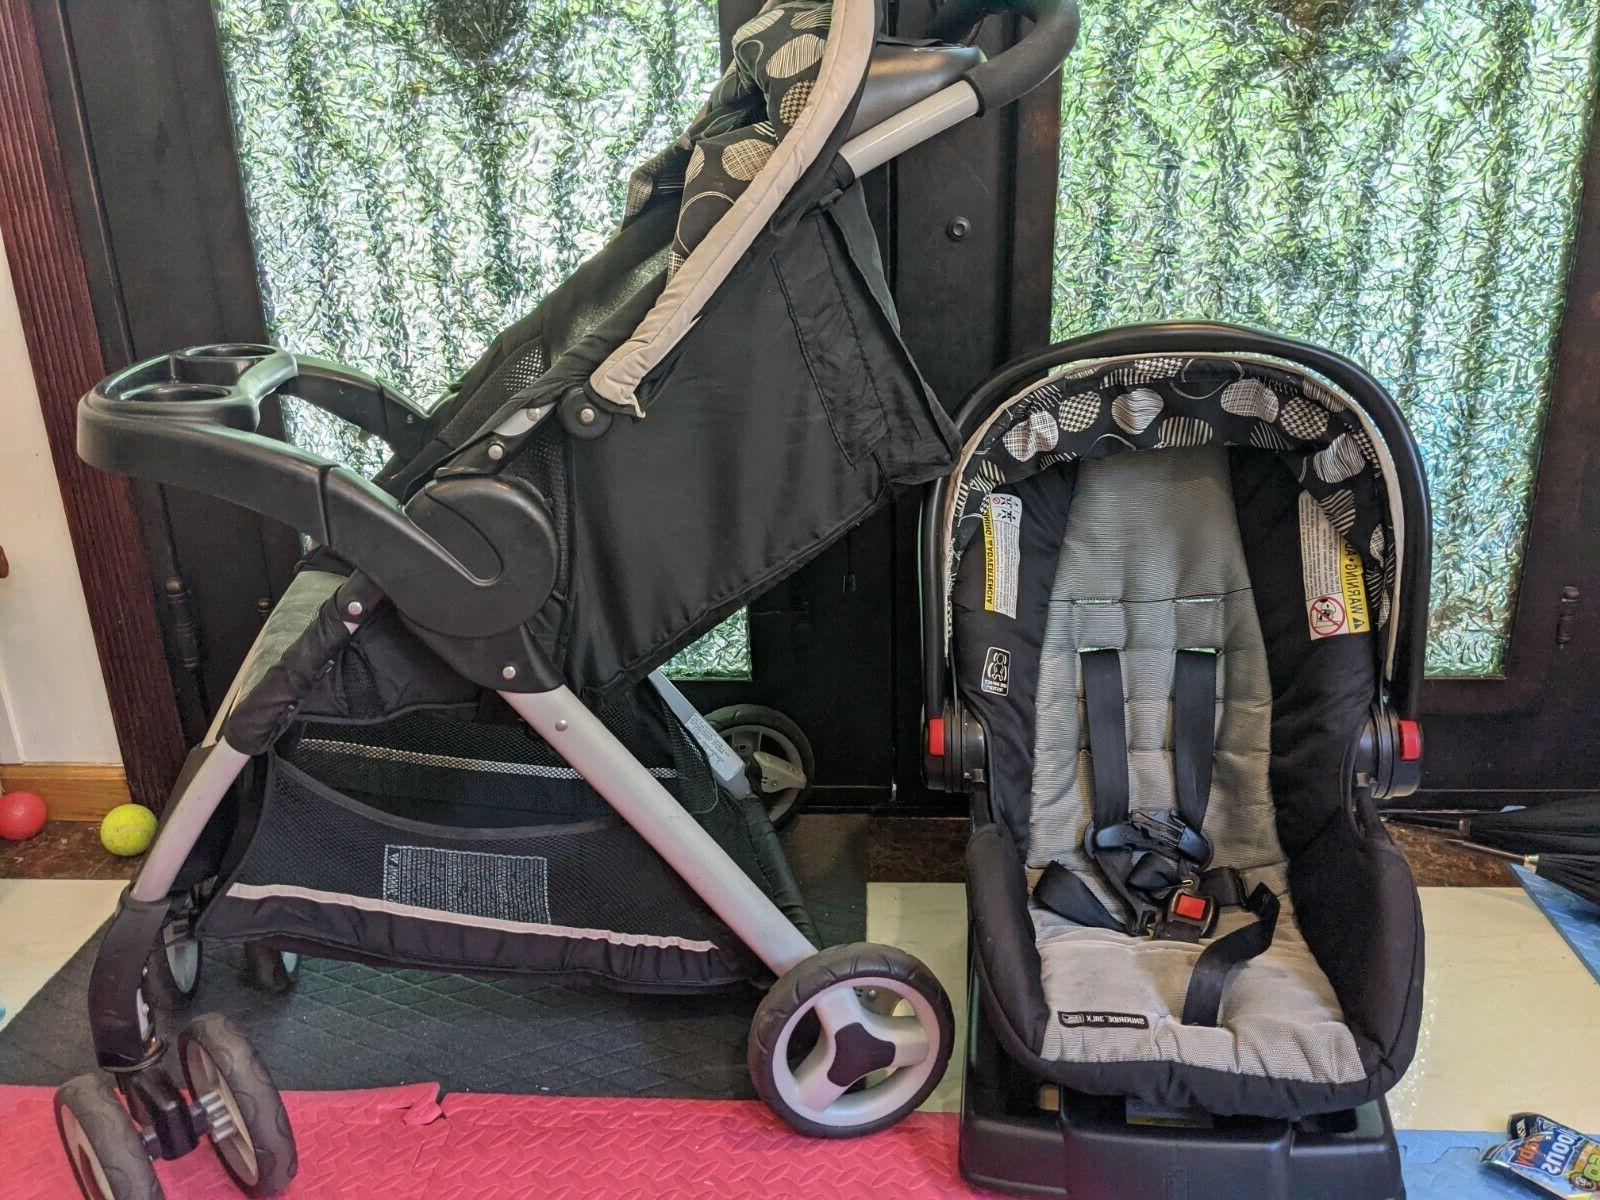 Graco Infant Stroller Combo Action wheel System